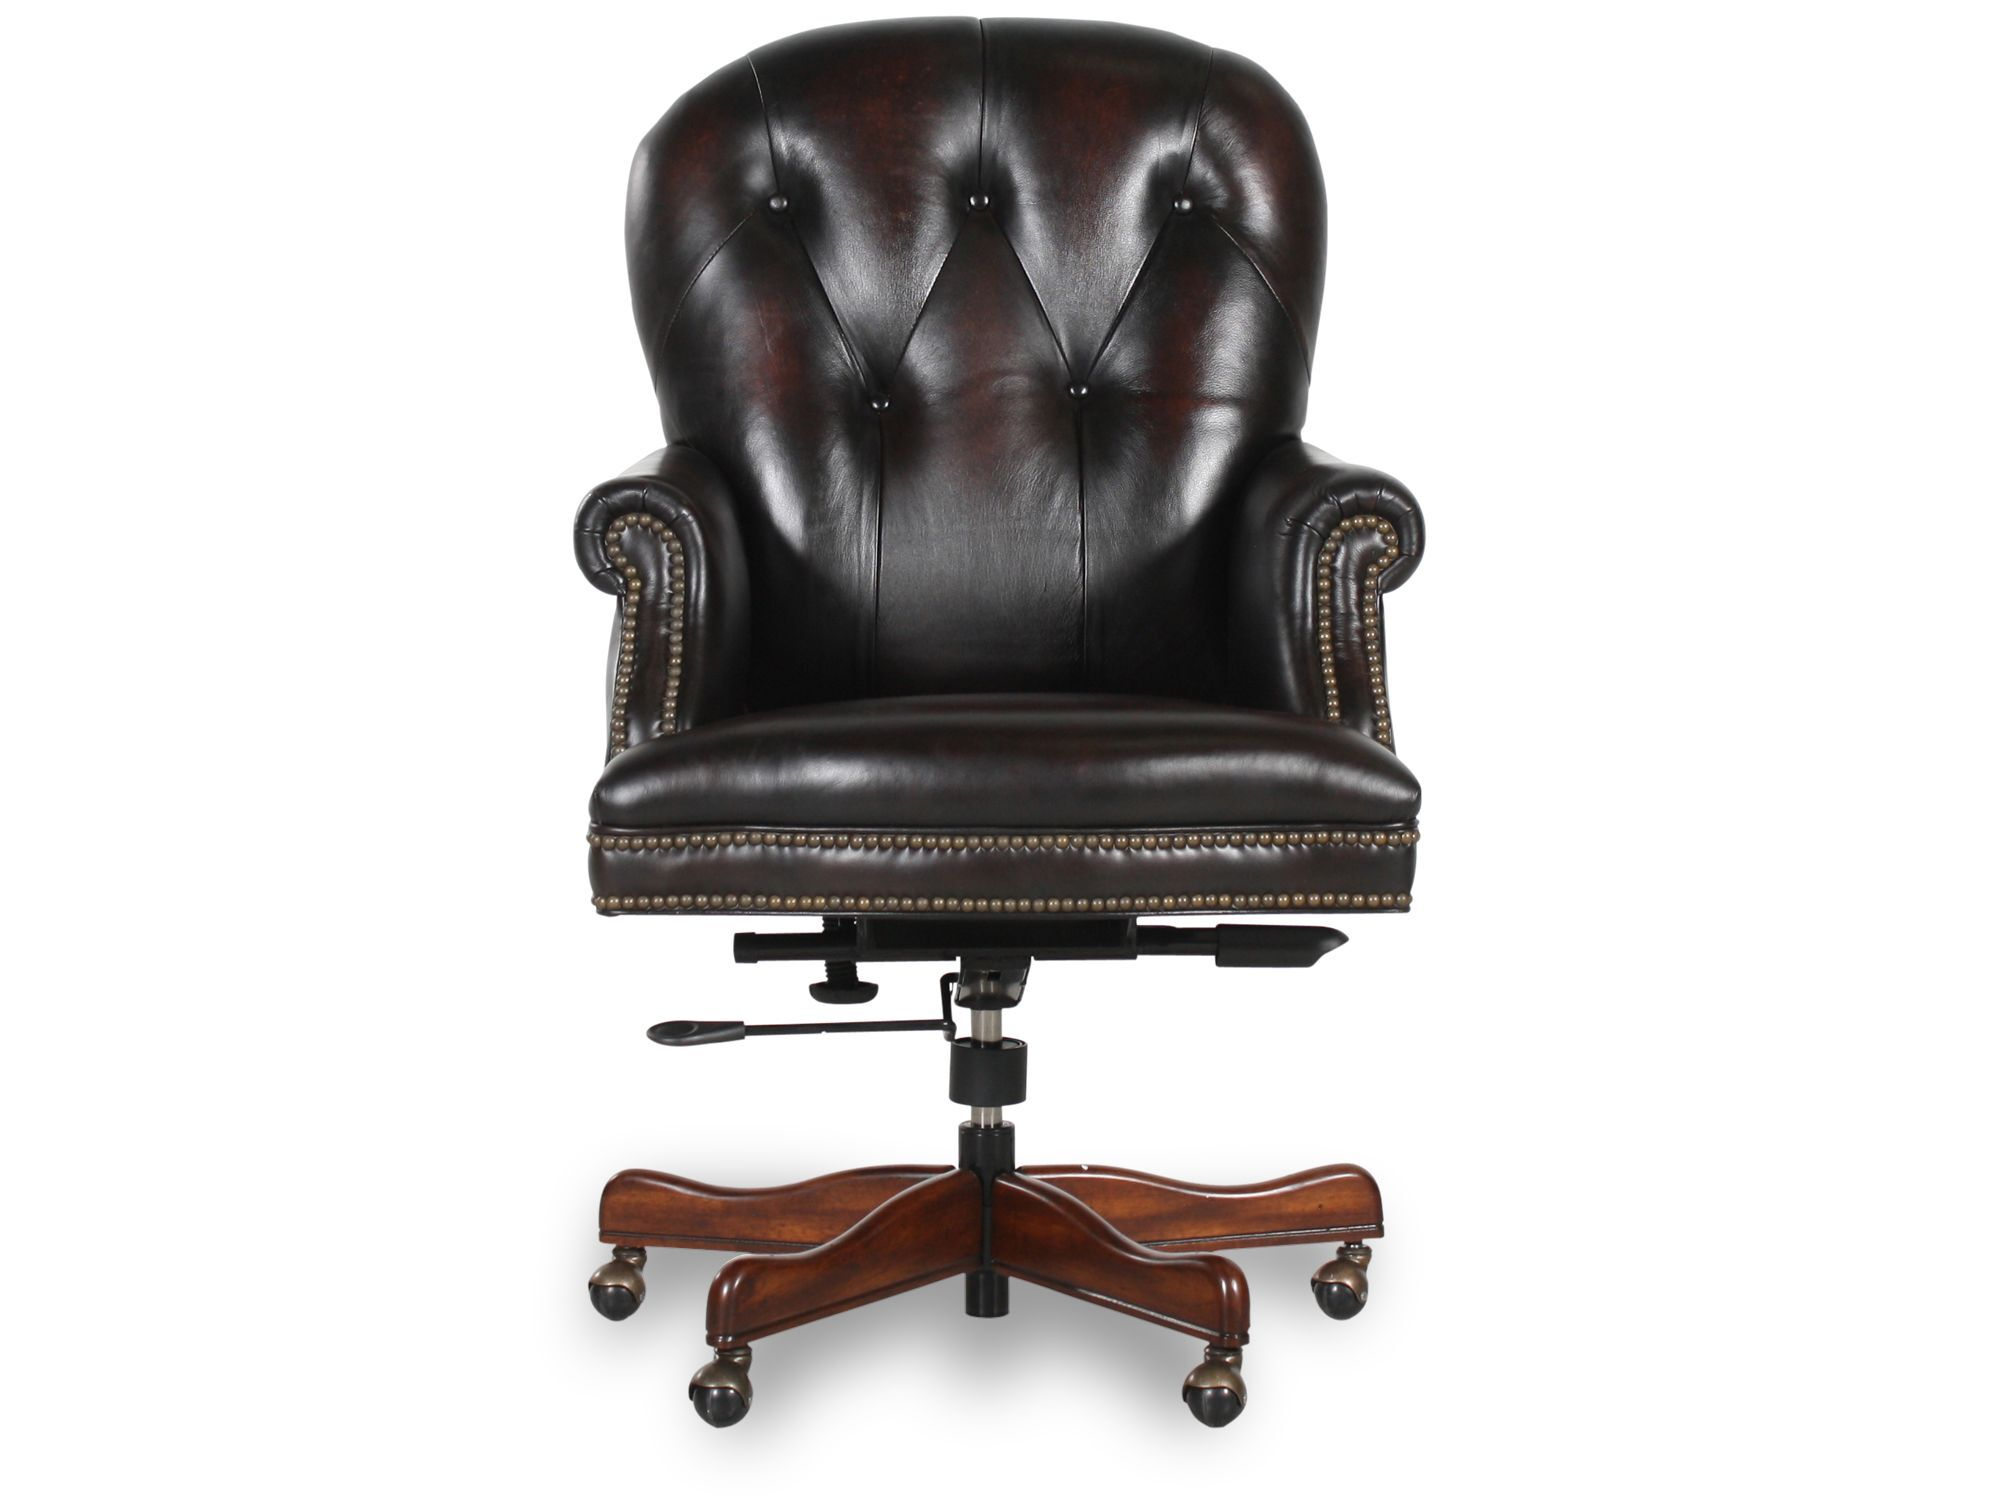 Images Leather Button Tufted Executive Swivel Tilt Chairu0026nbsp;in Dark Brown  Leather Button Tufted Executive Swivel Tilt Chairu0026nbsp;in Dark Brown